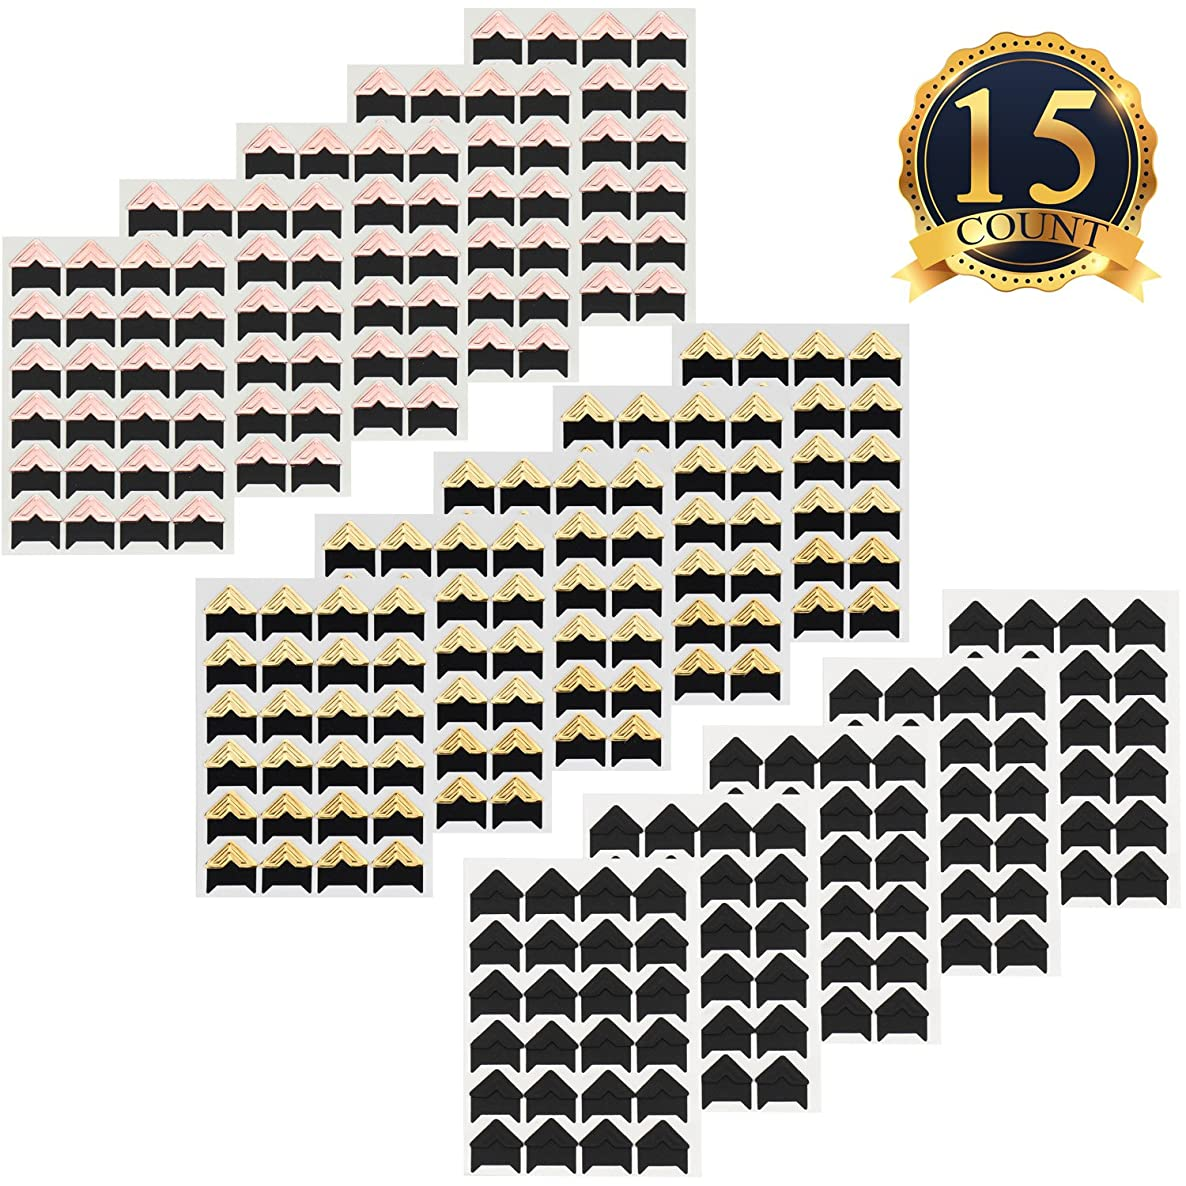 15 Sheets Photo Corners Self Adhesive Photo Mounting Sticker Paper Corner Stickers for Scrapbooking Album Dairy, Black,Gold and Rose Gold